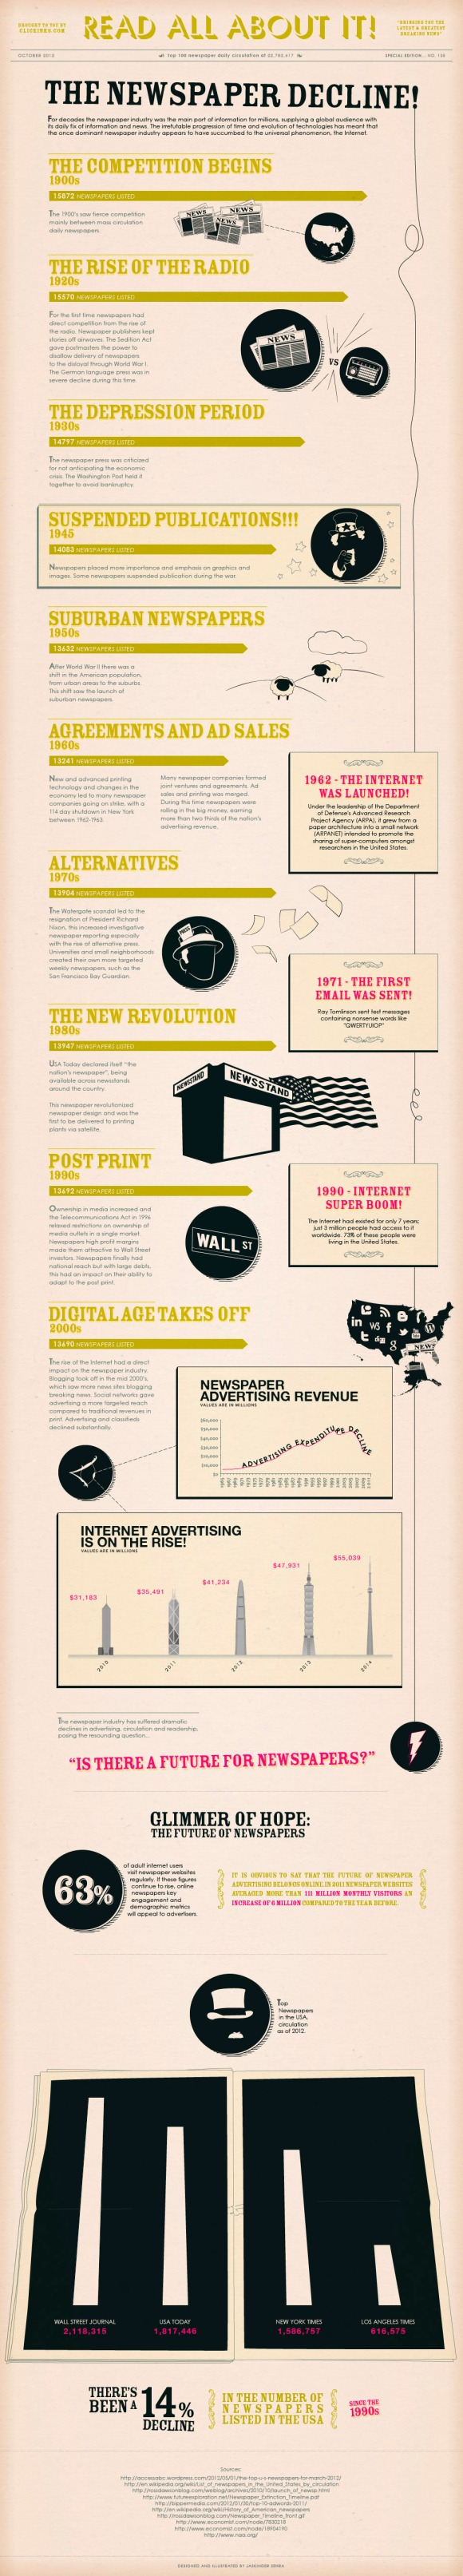 USA Newspaper Decline infographic